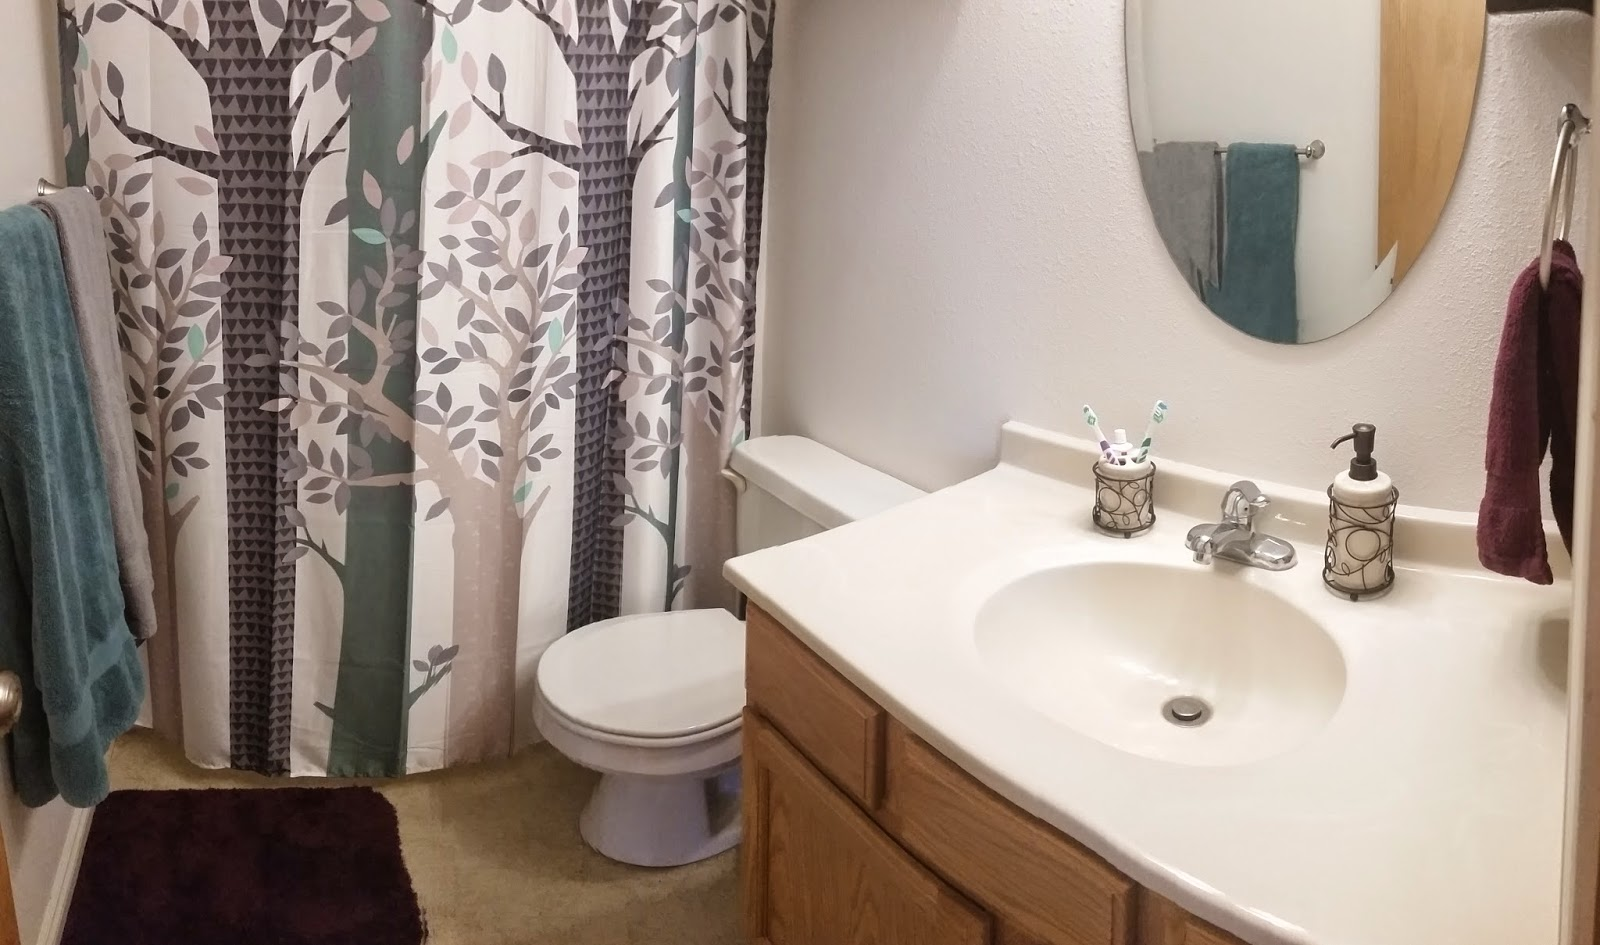 I Also Love Our Color Coordinated And Tree Leaf Themed Bathroom It Is Great To Have Upgraded Past The Eclectic Decor A Bit